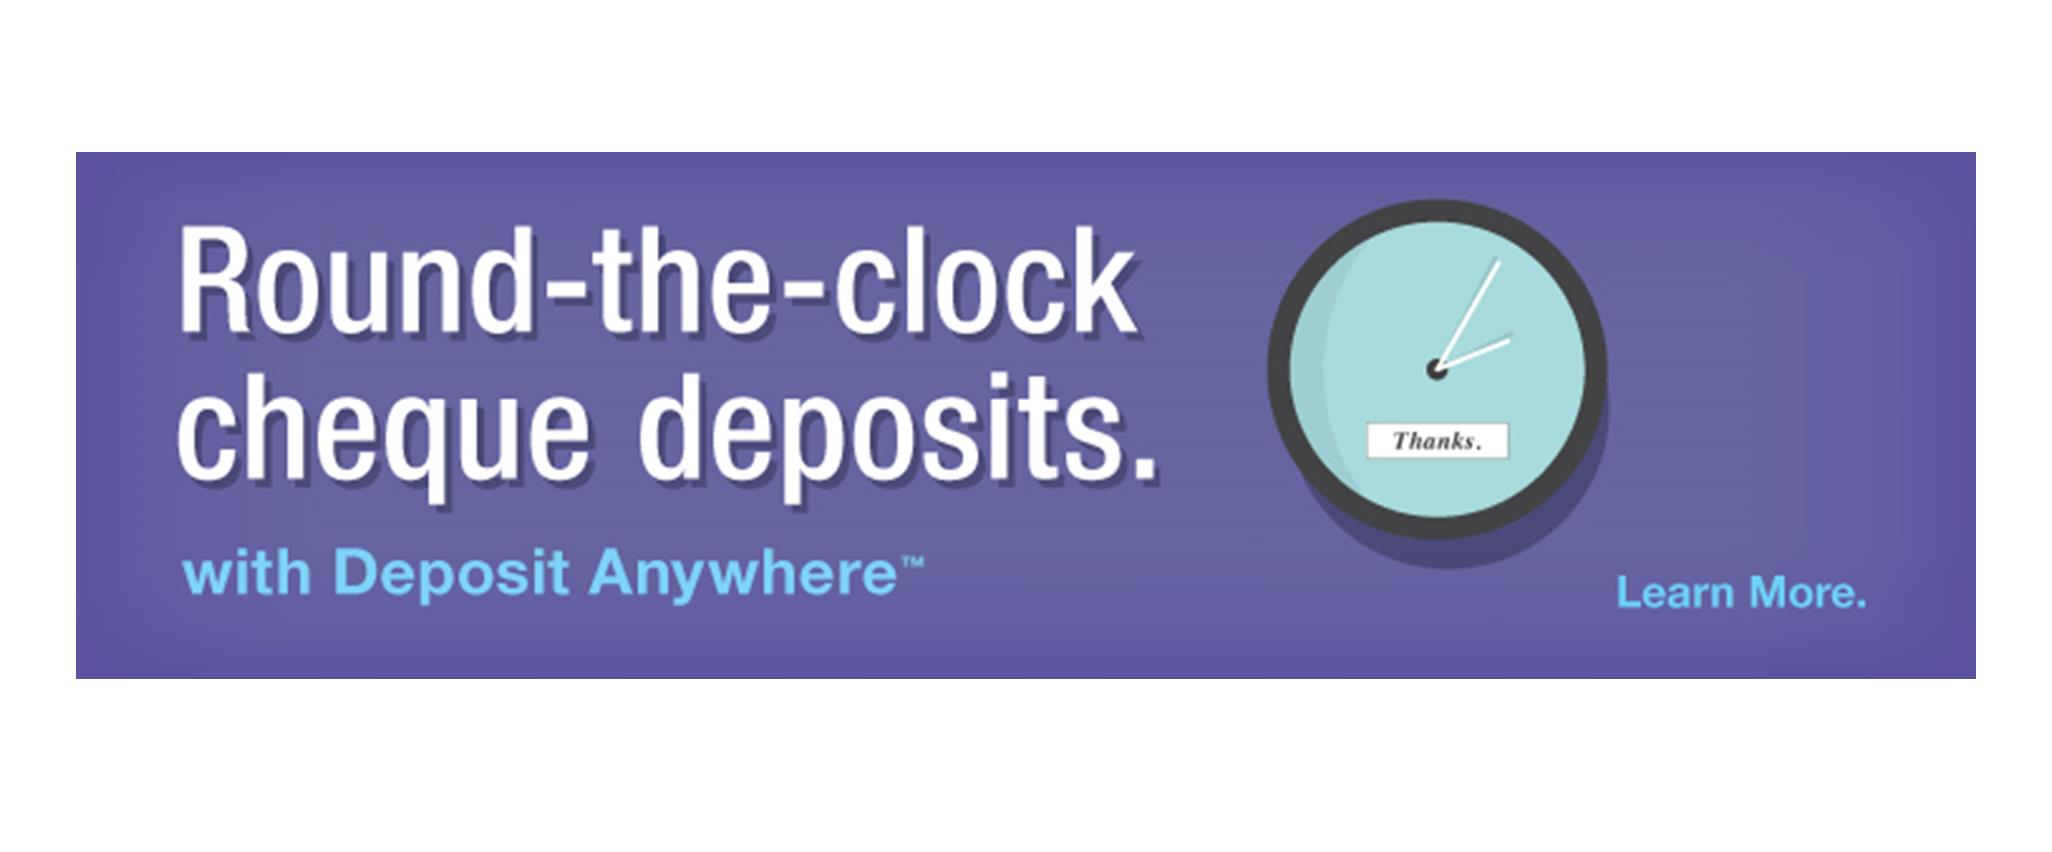 banking and financial services | cypress credit union